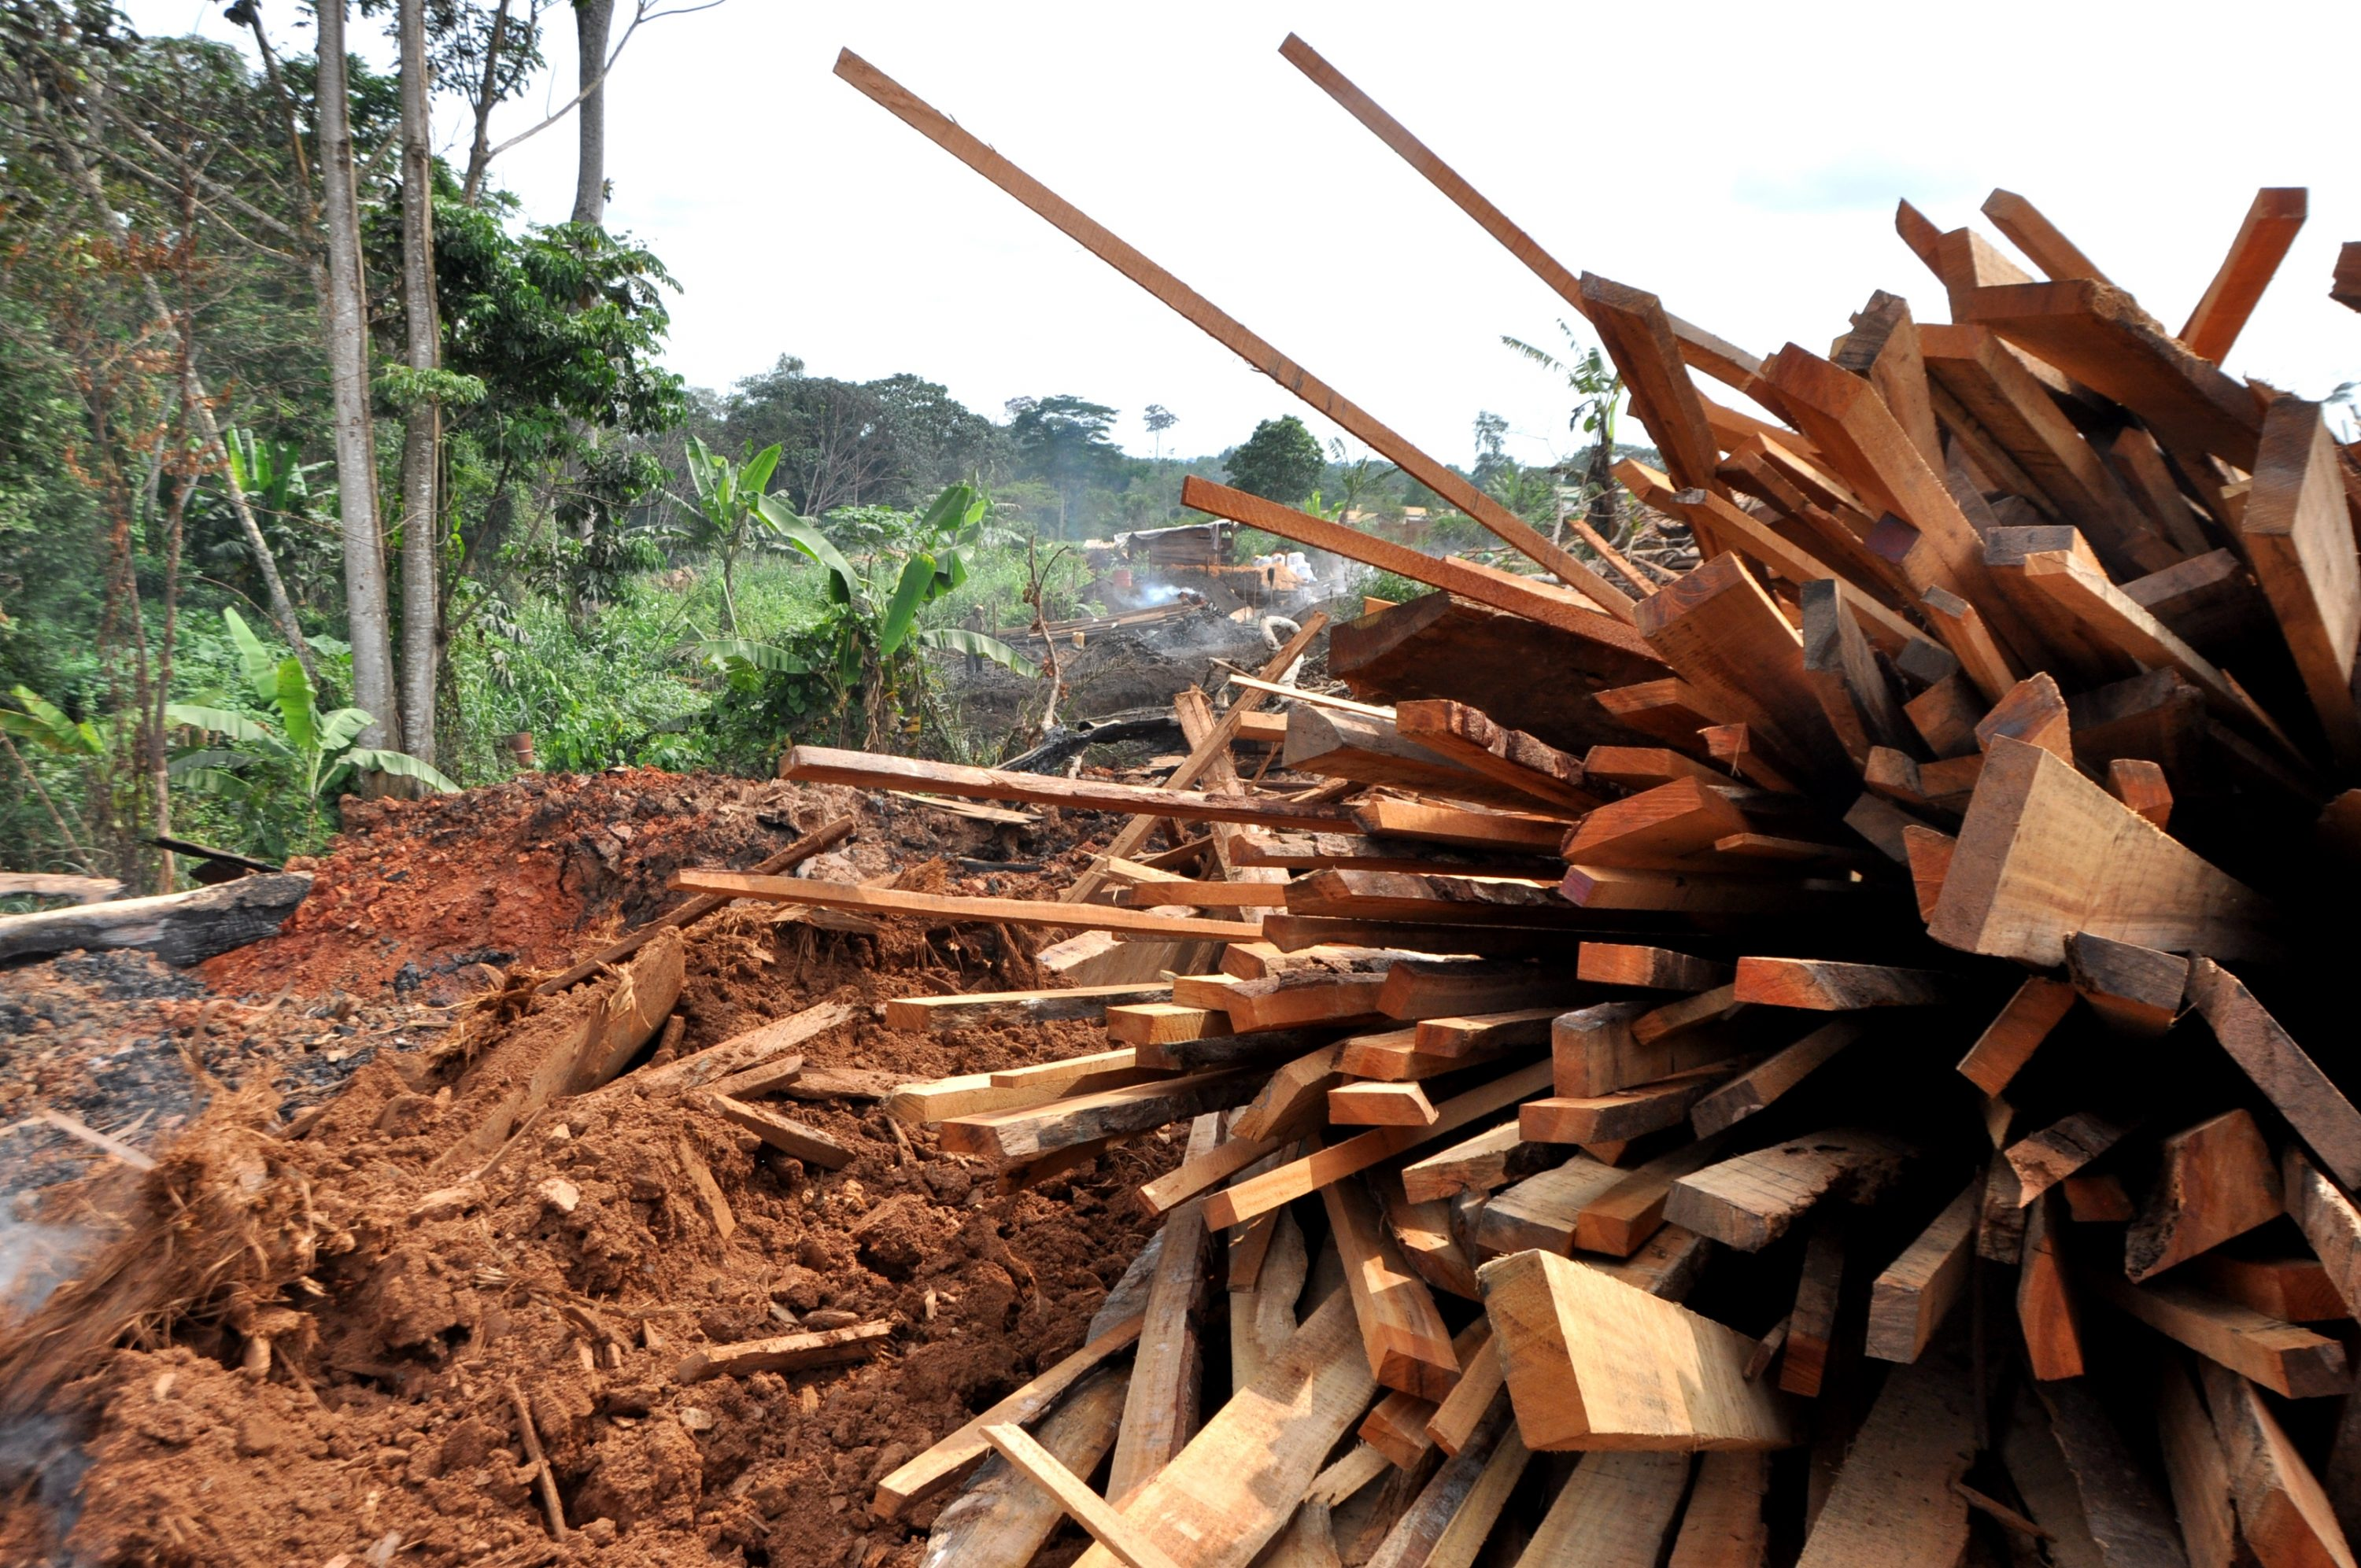 12 - alternatives to make a living - charcoal production - transform timber waste to charcaol (3) wood for charcoal